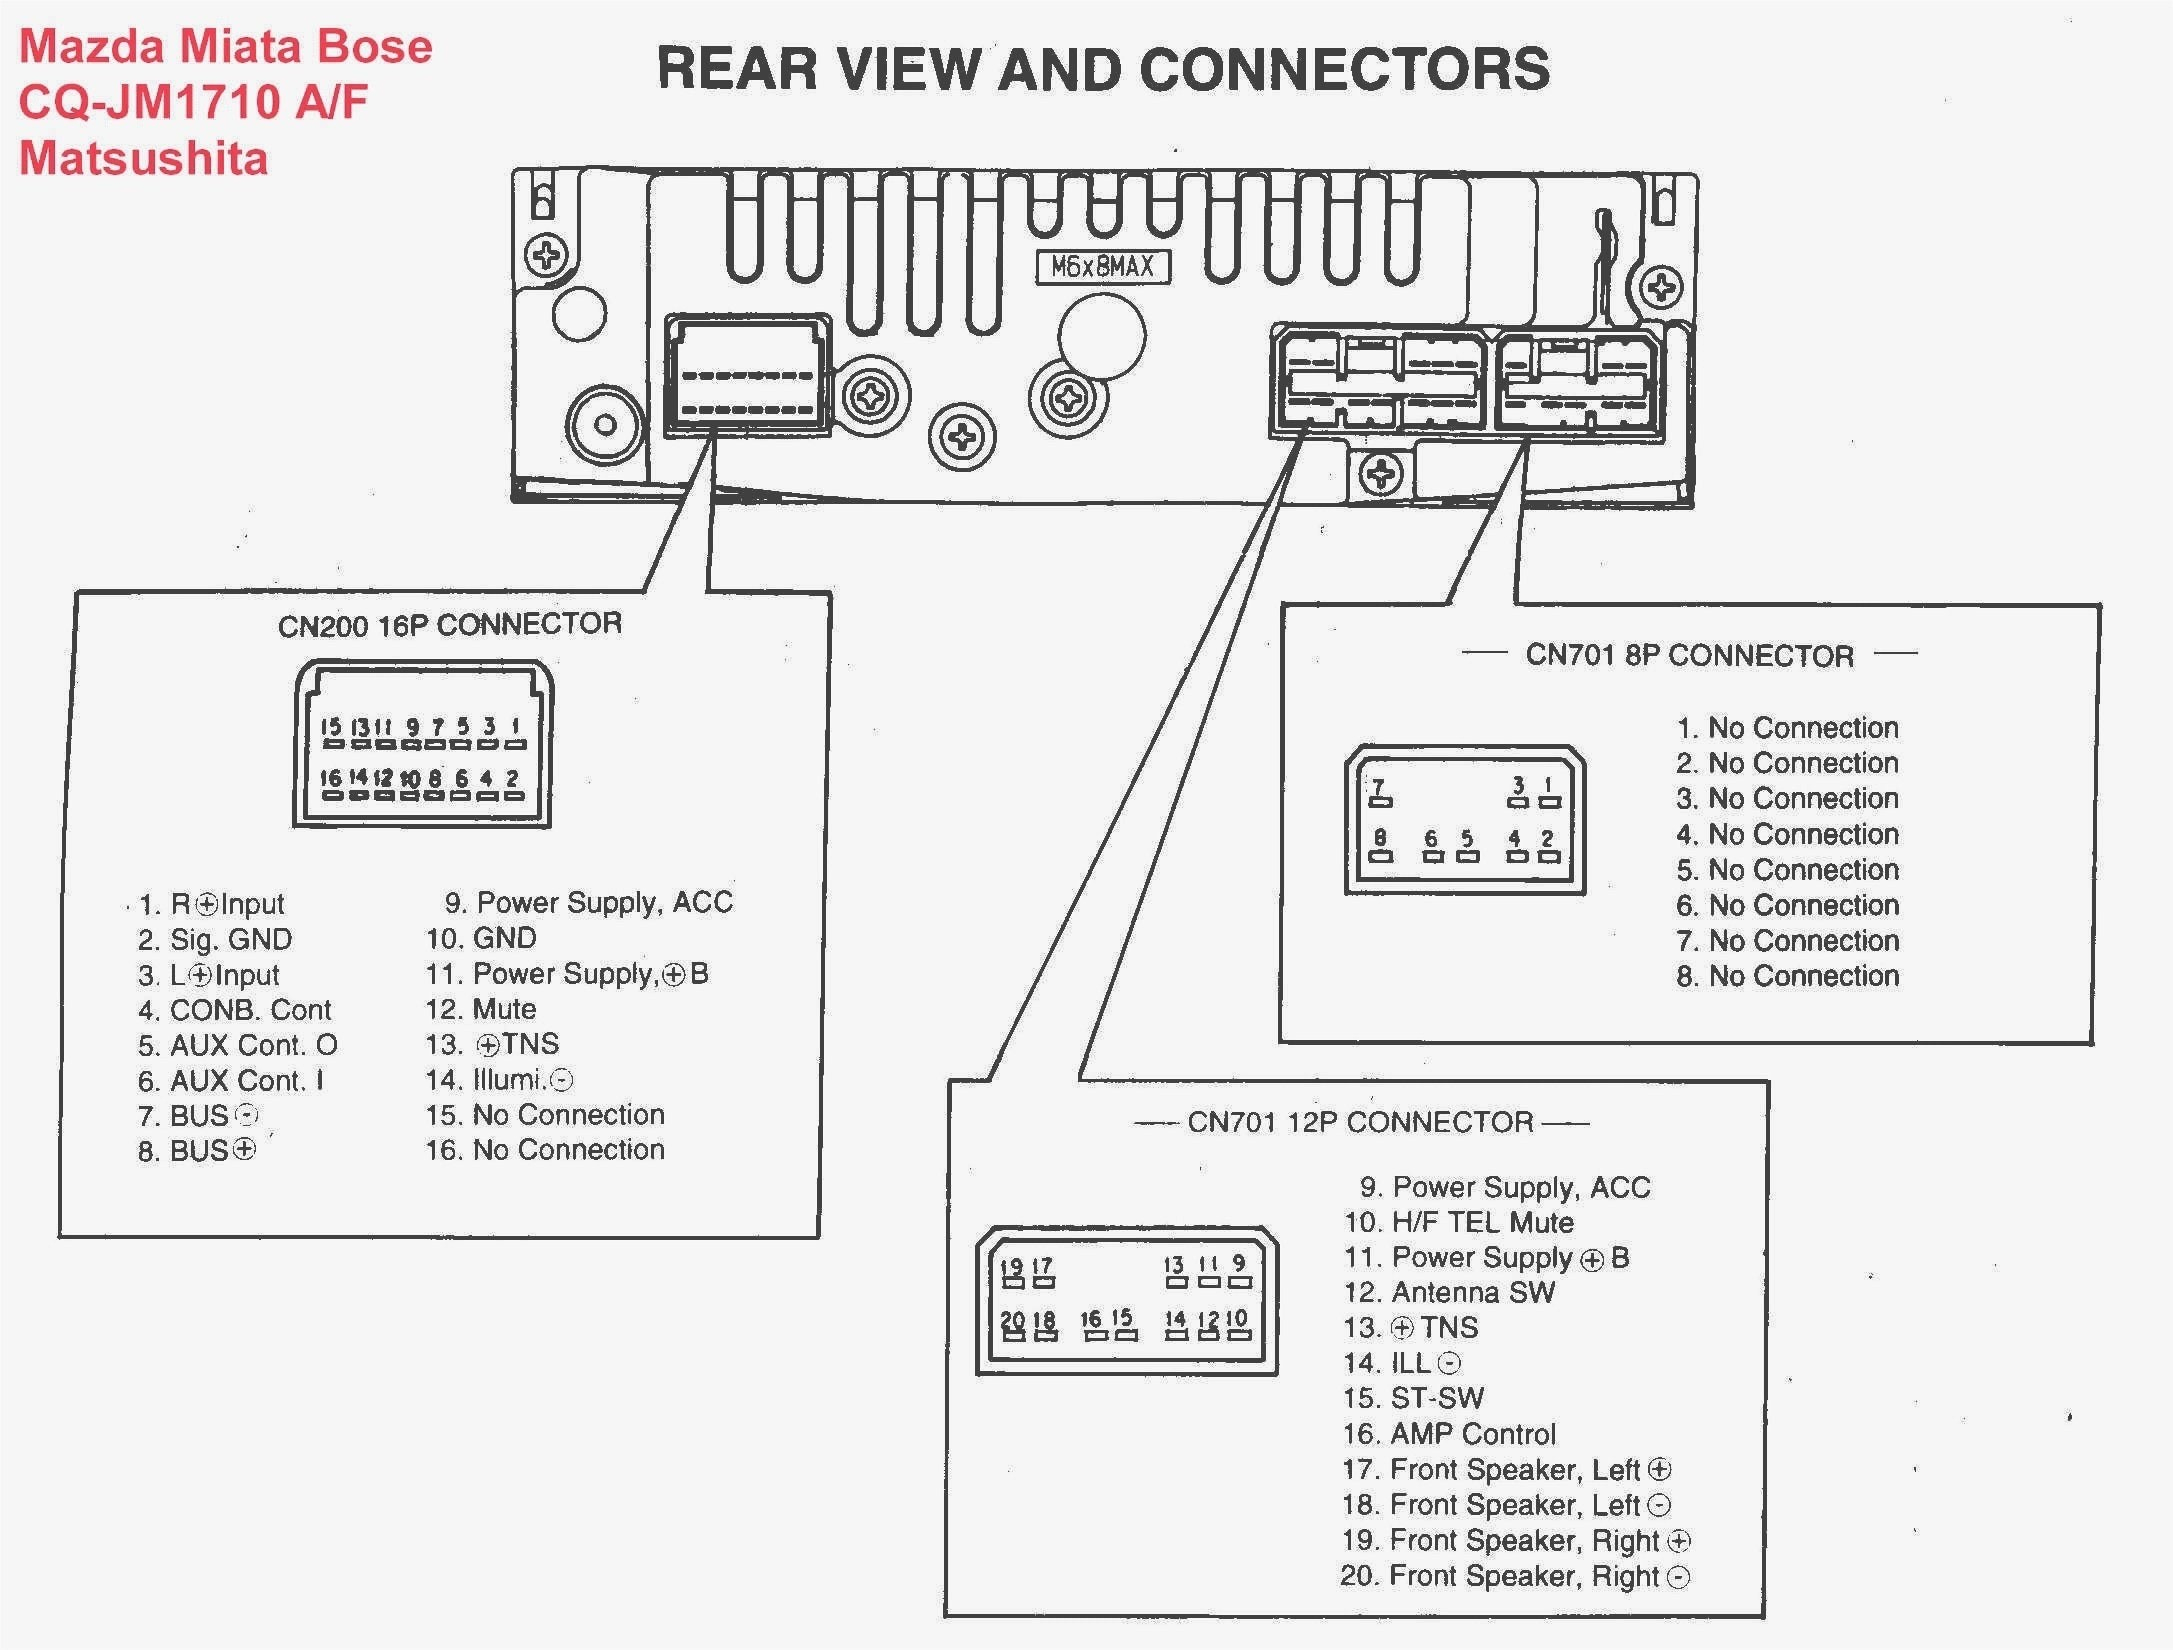 Pioneer Avic N1 Cpn1899 Wiring Diagram Pioneer Parking Brake Bypass - Pioneer Parking Brake Bypass Wiring Diagram